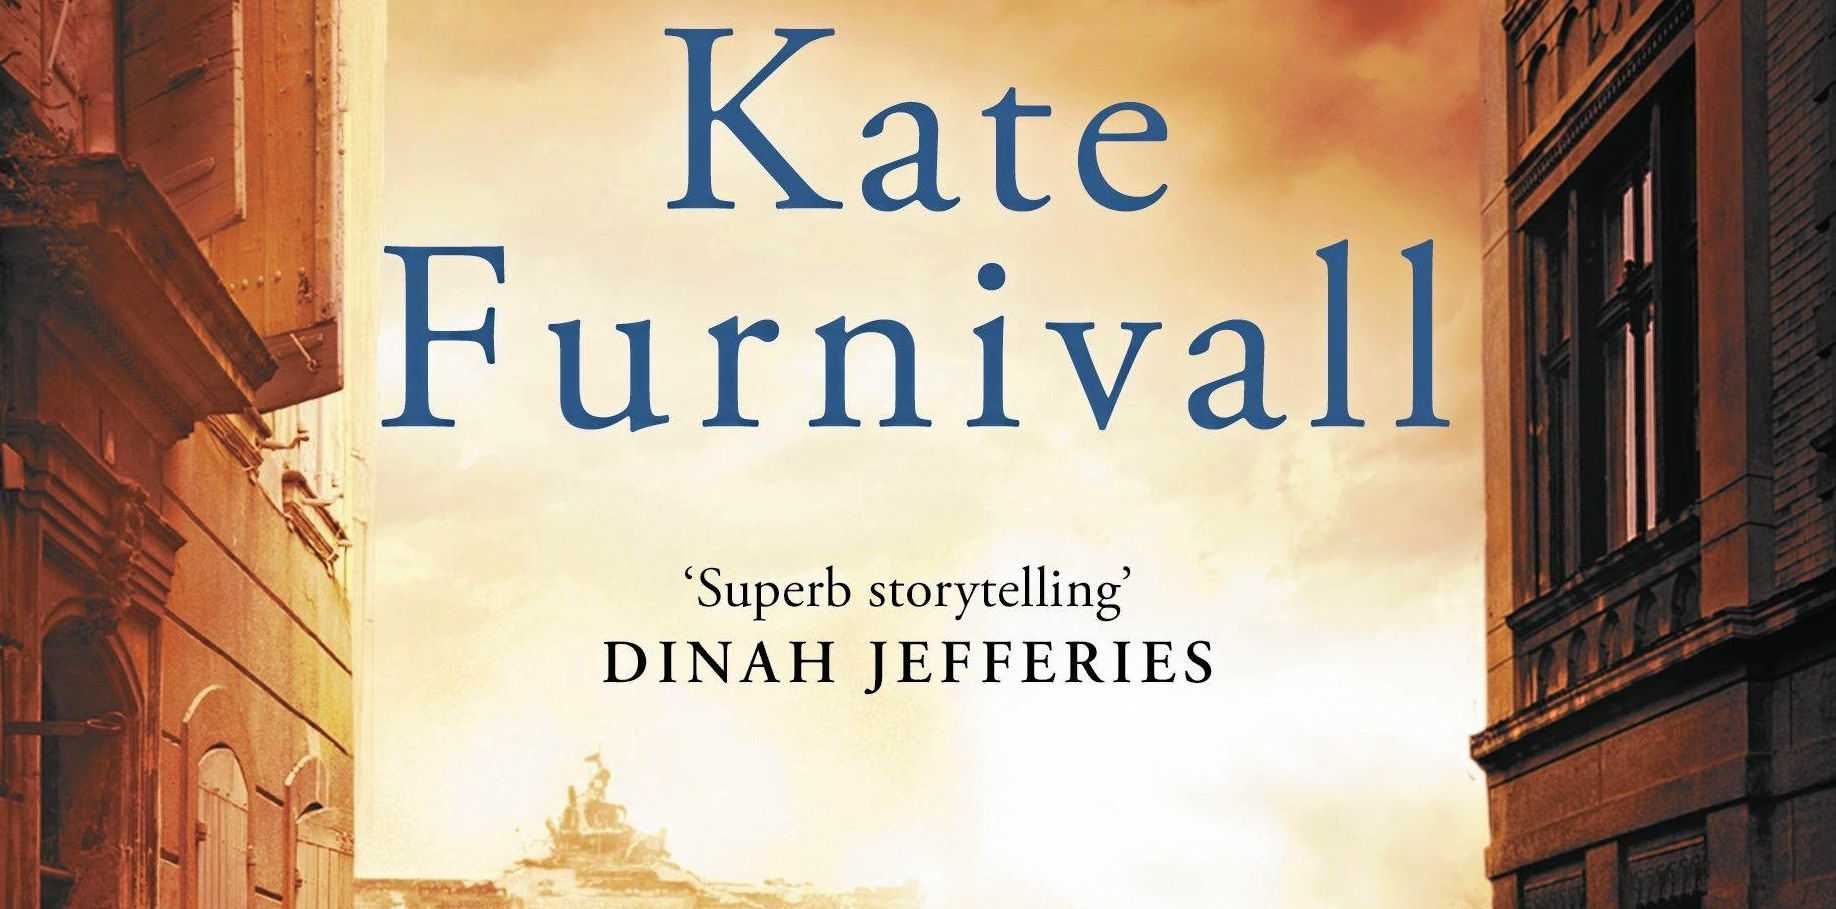 NEW BOOK: Kate Furnivall's The Survivors.